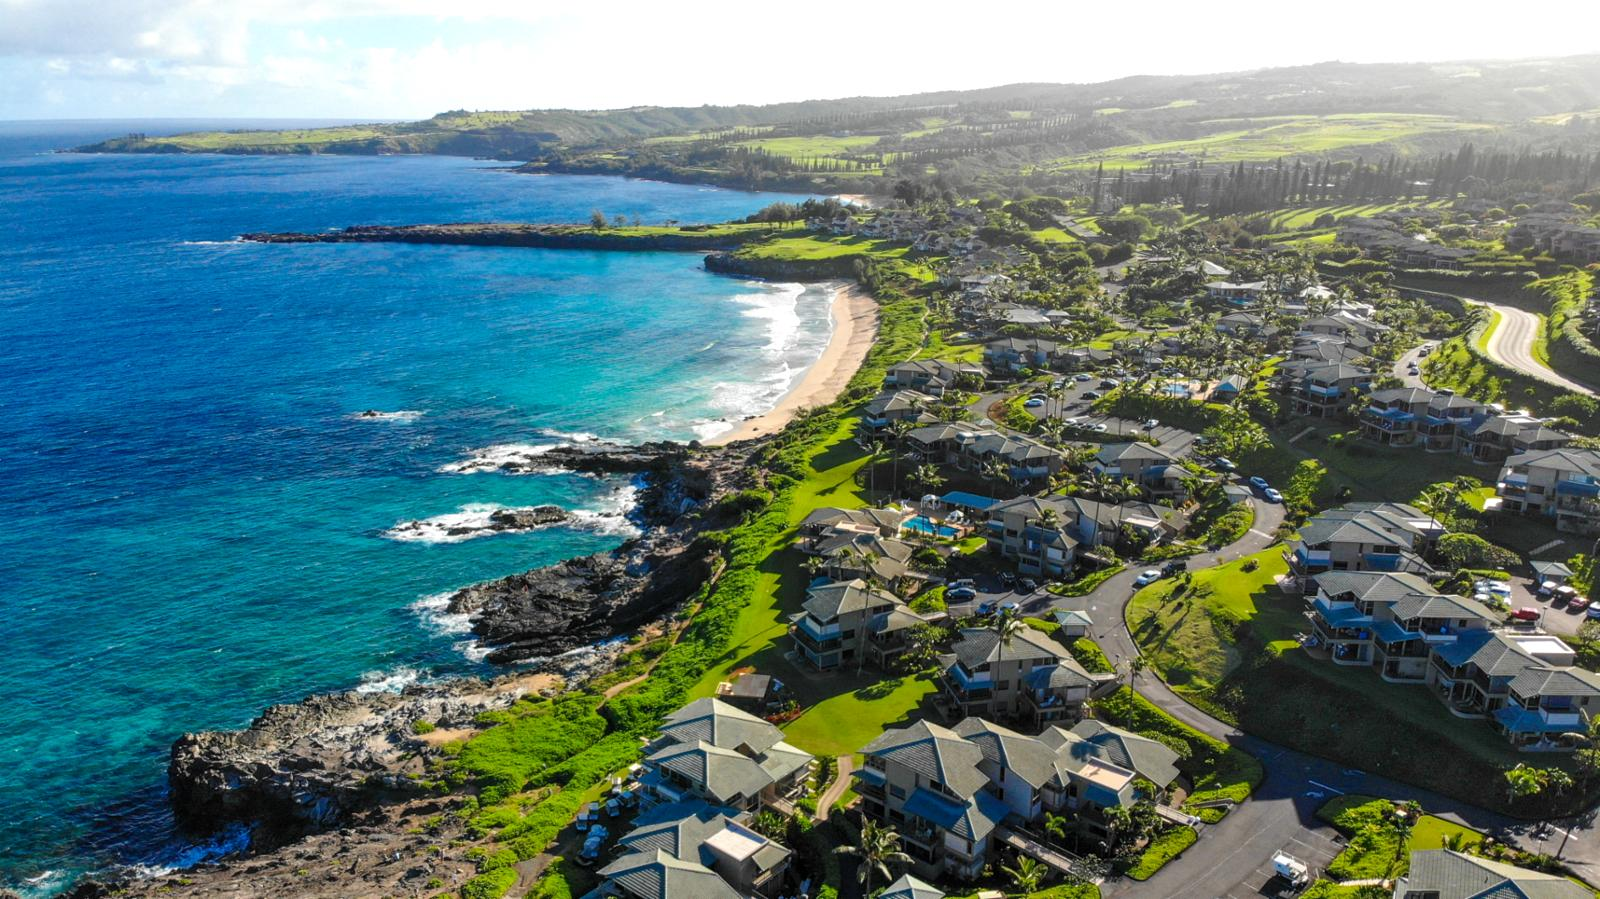 Birds eye view of the world famous Kapalua Bay Villas!